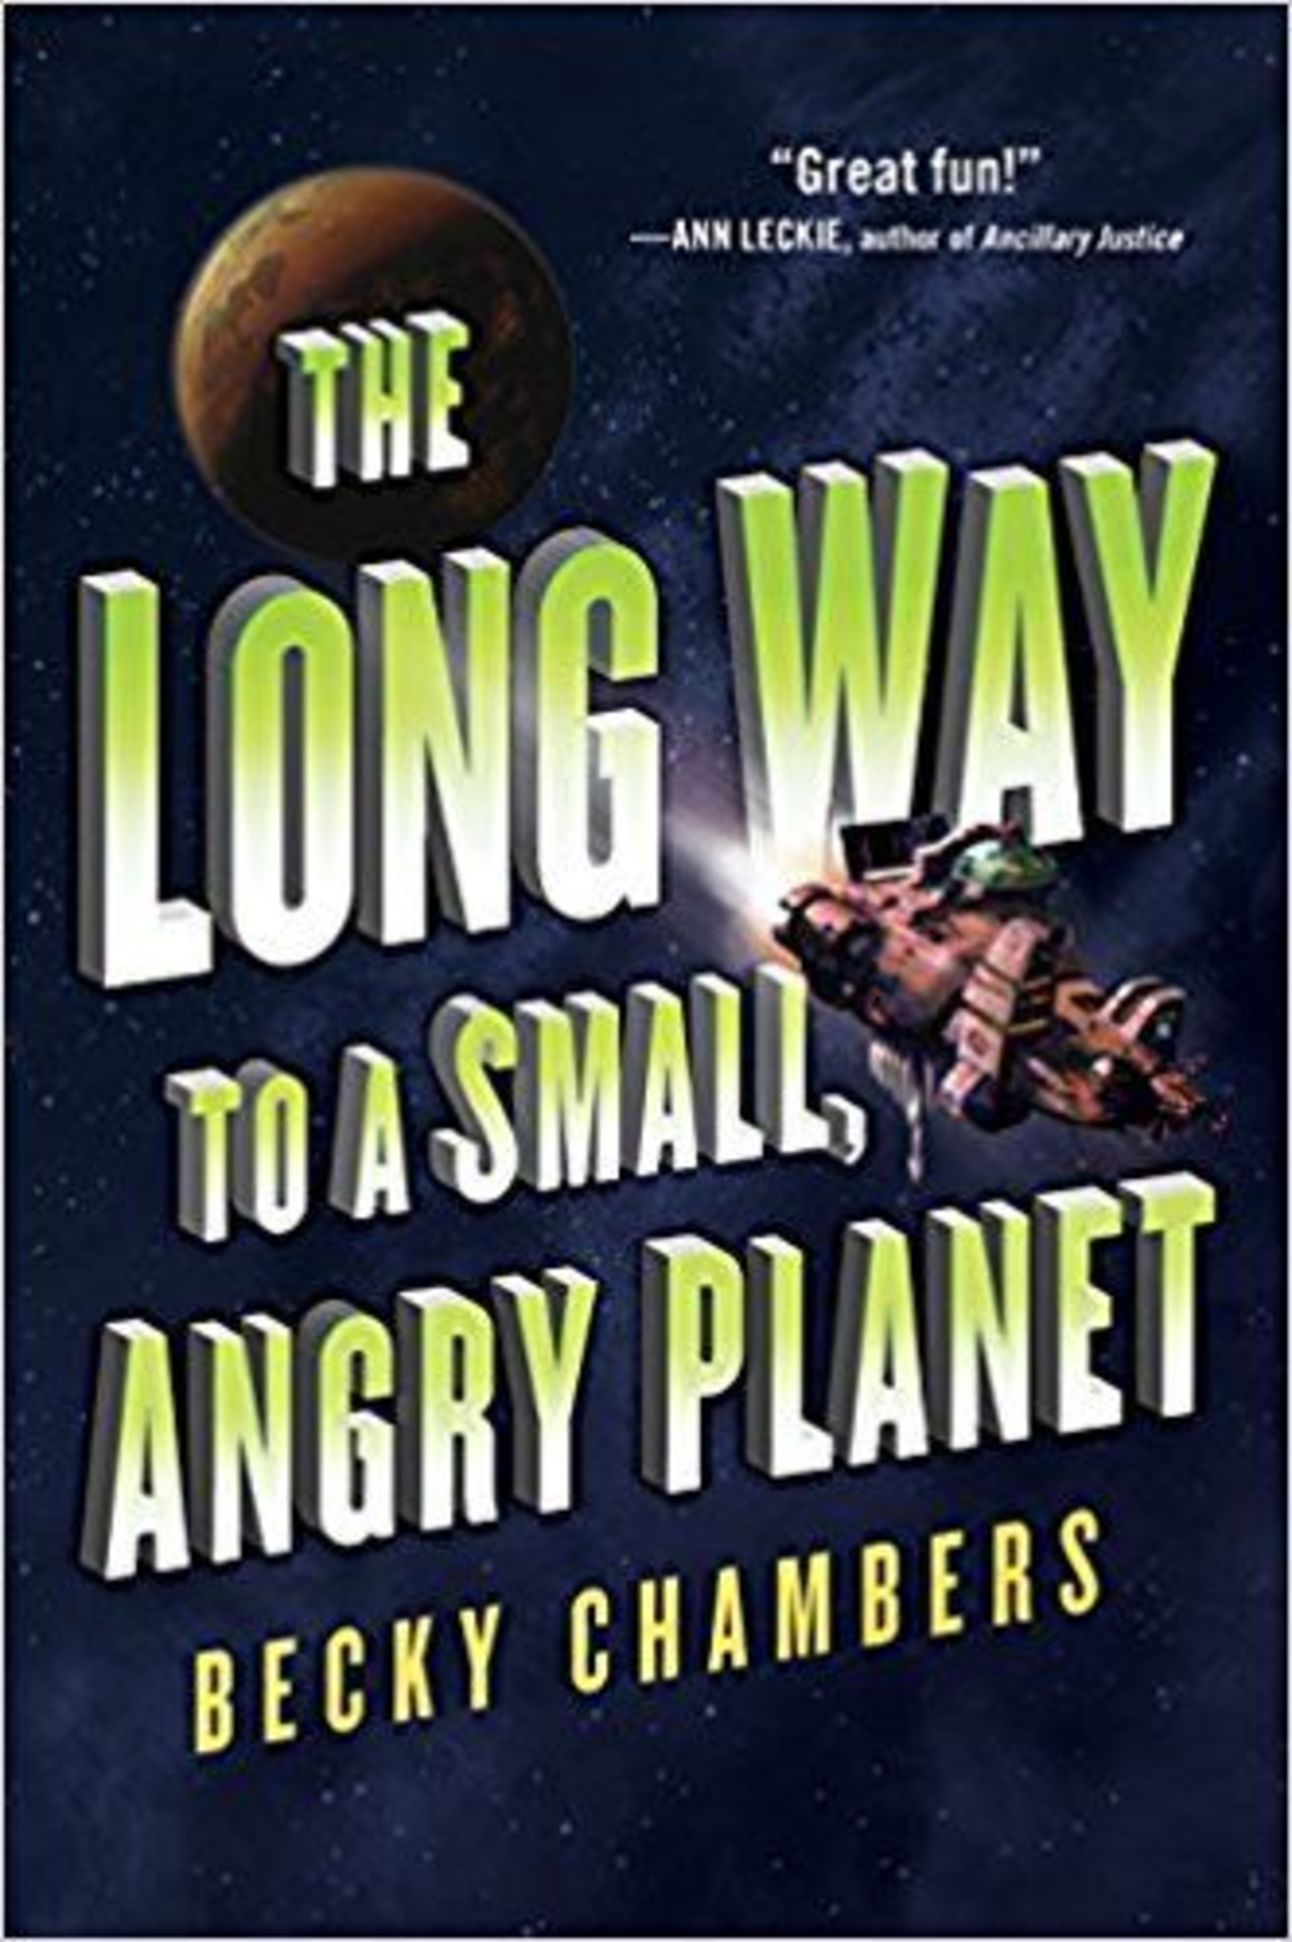 the-long-way-to-a-small-angry-planet-book-cover